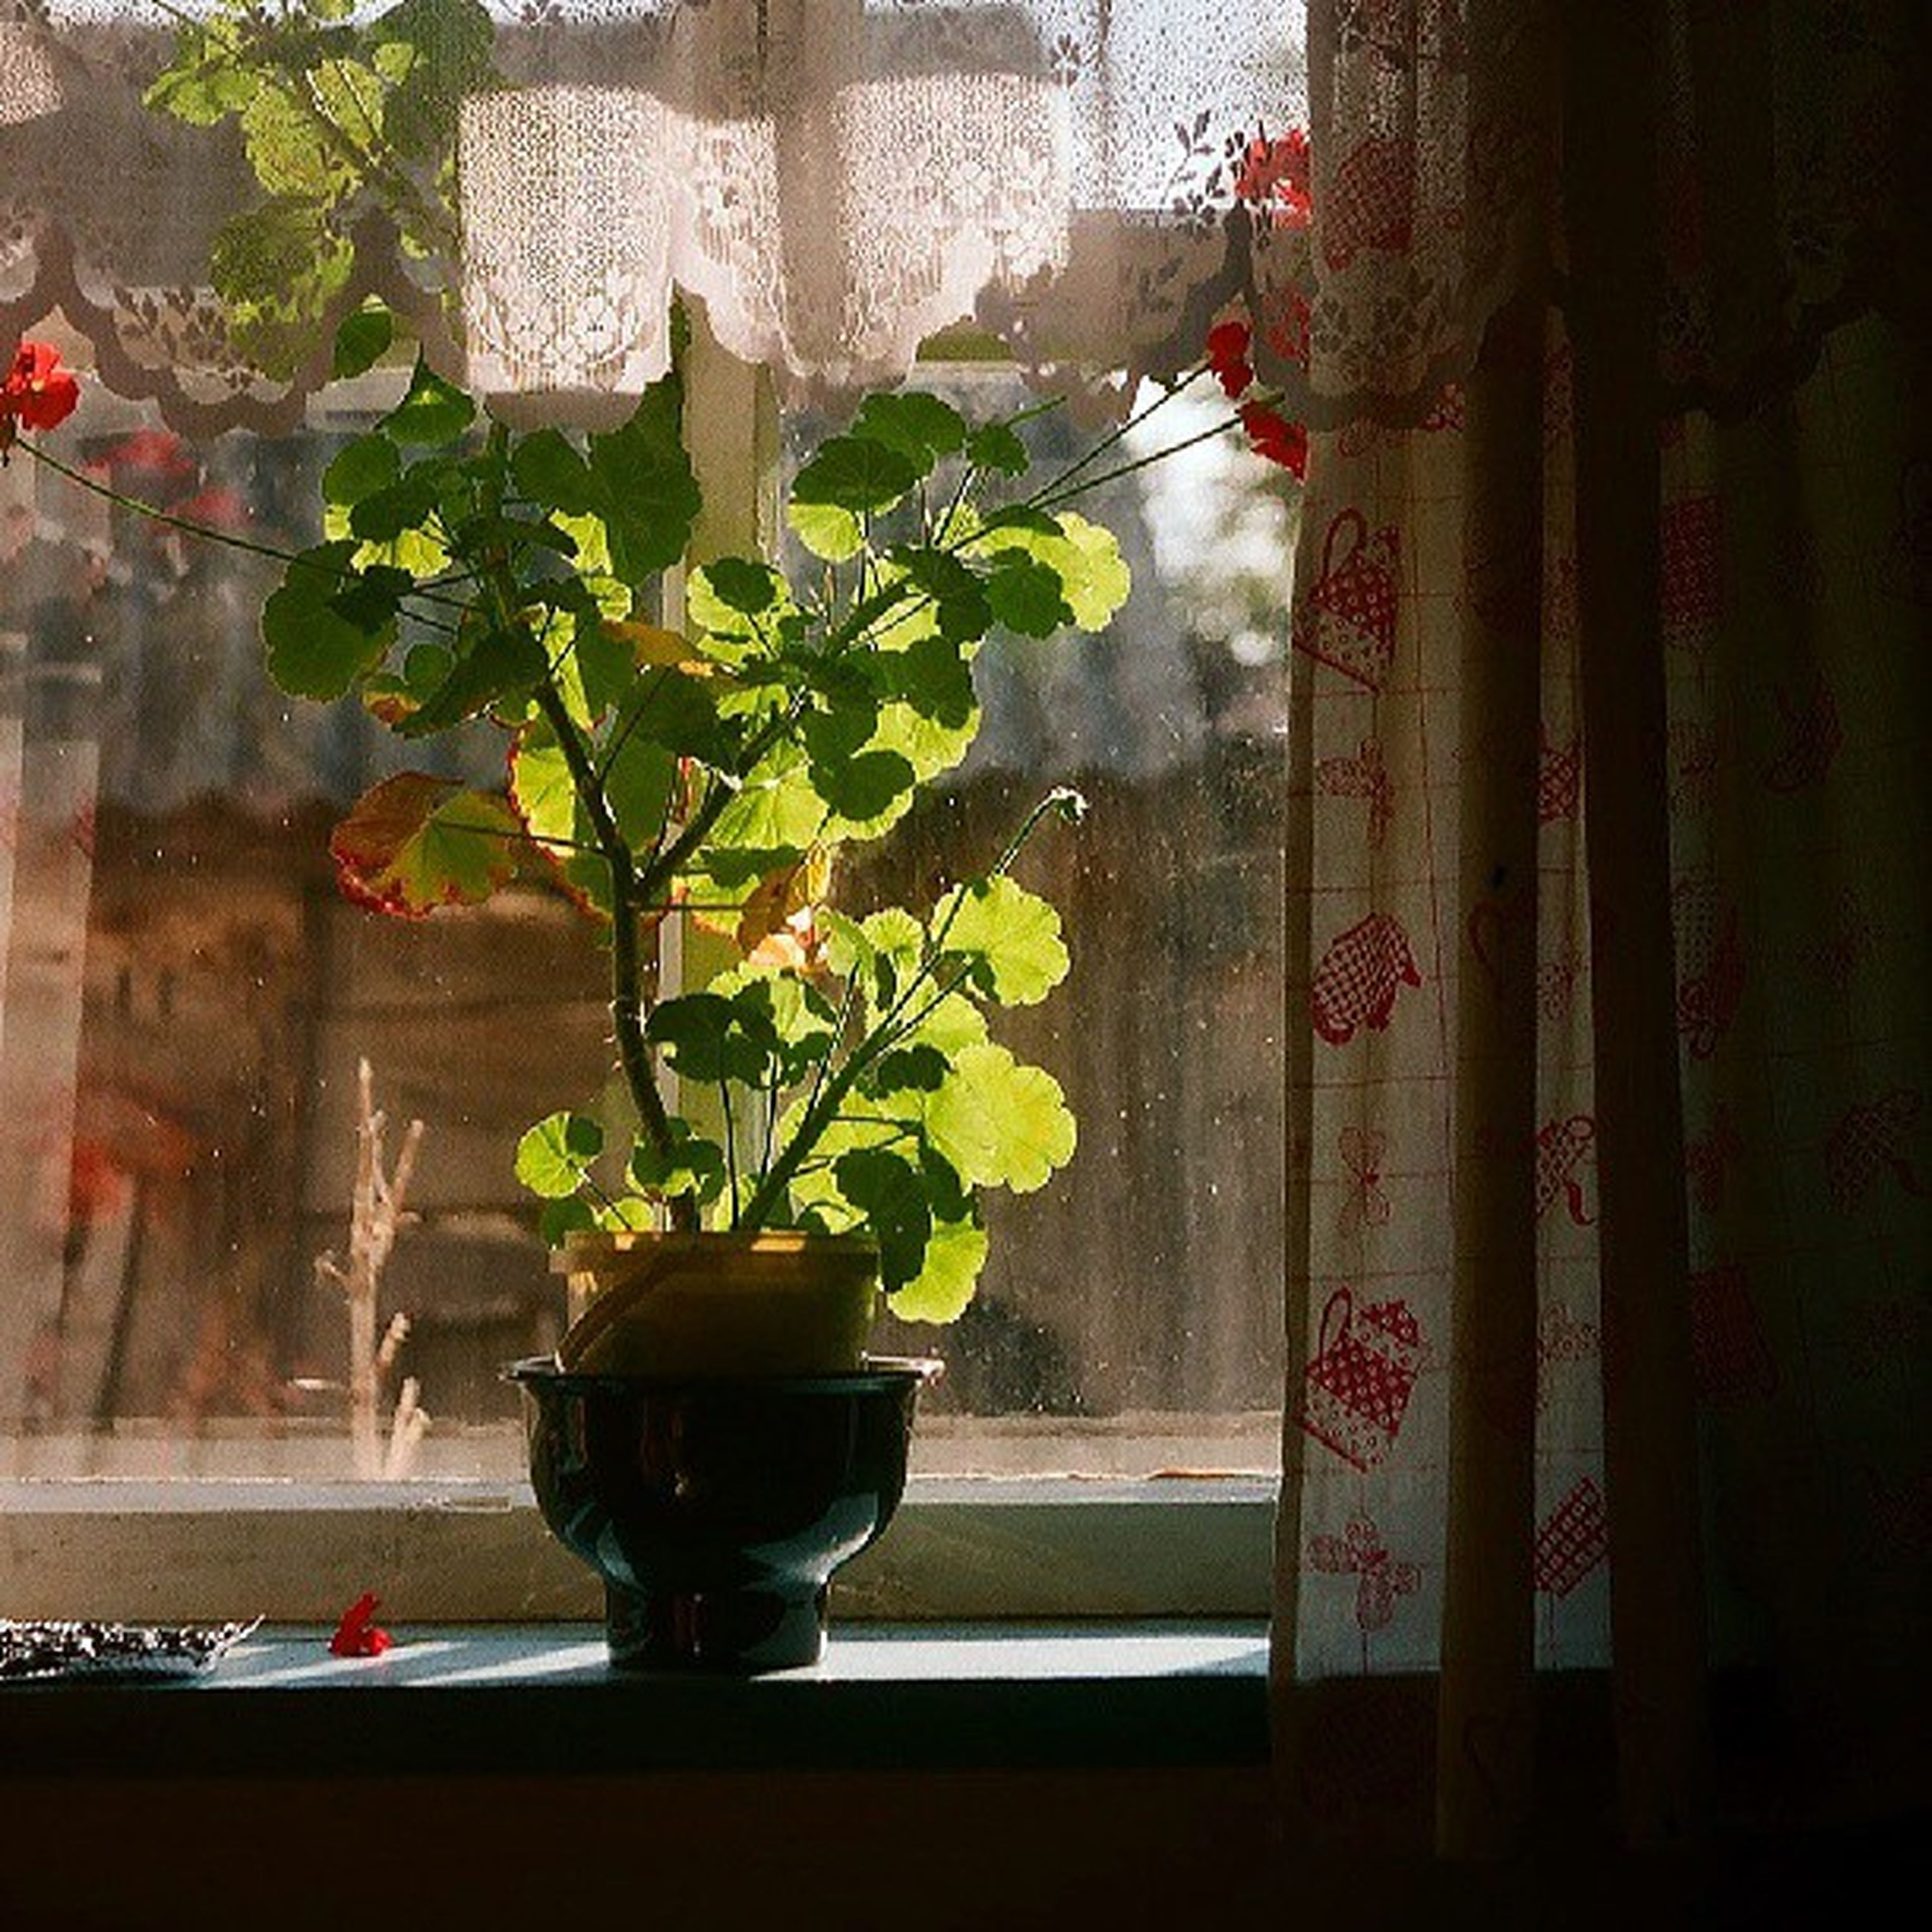 indoors, potted plant, flower, vase, plant, window, growth, window sill, flower pot, home interior, table, glass - material, curtain, wall - building feature, freshness, built structure, transparent, wall, architecture, leaf